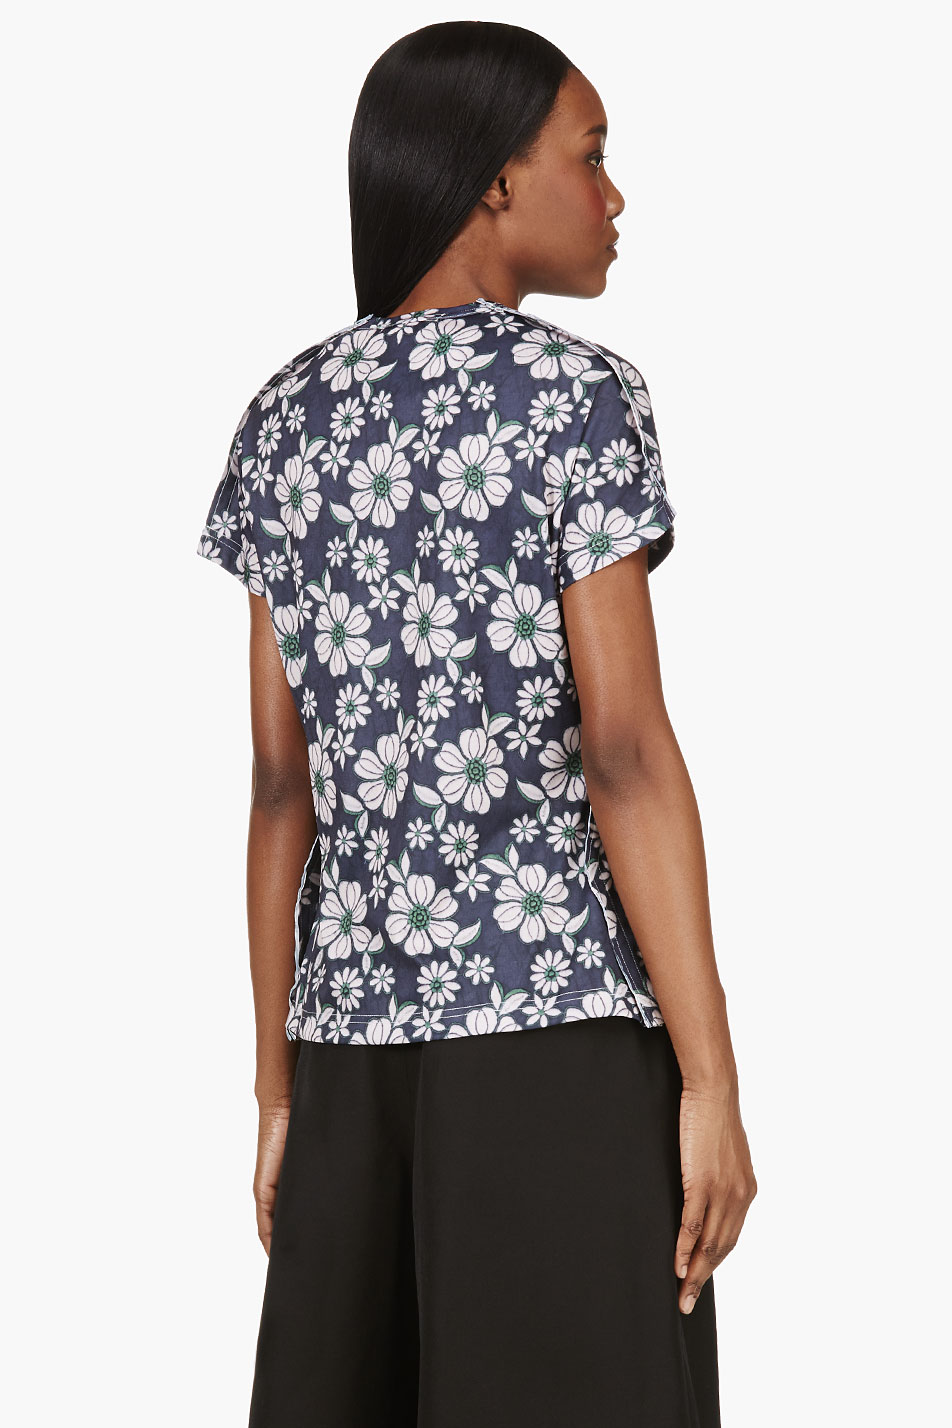 Comme-des-Garcons-Navy-Floral-Embroidery-Print-Cut-Out-Tee_3